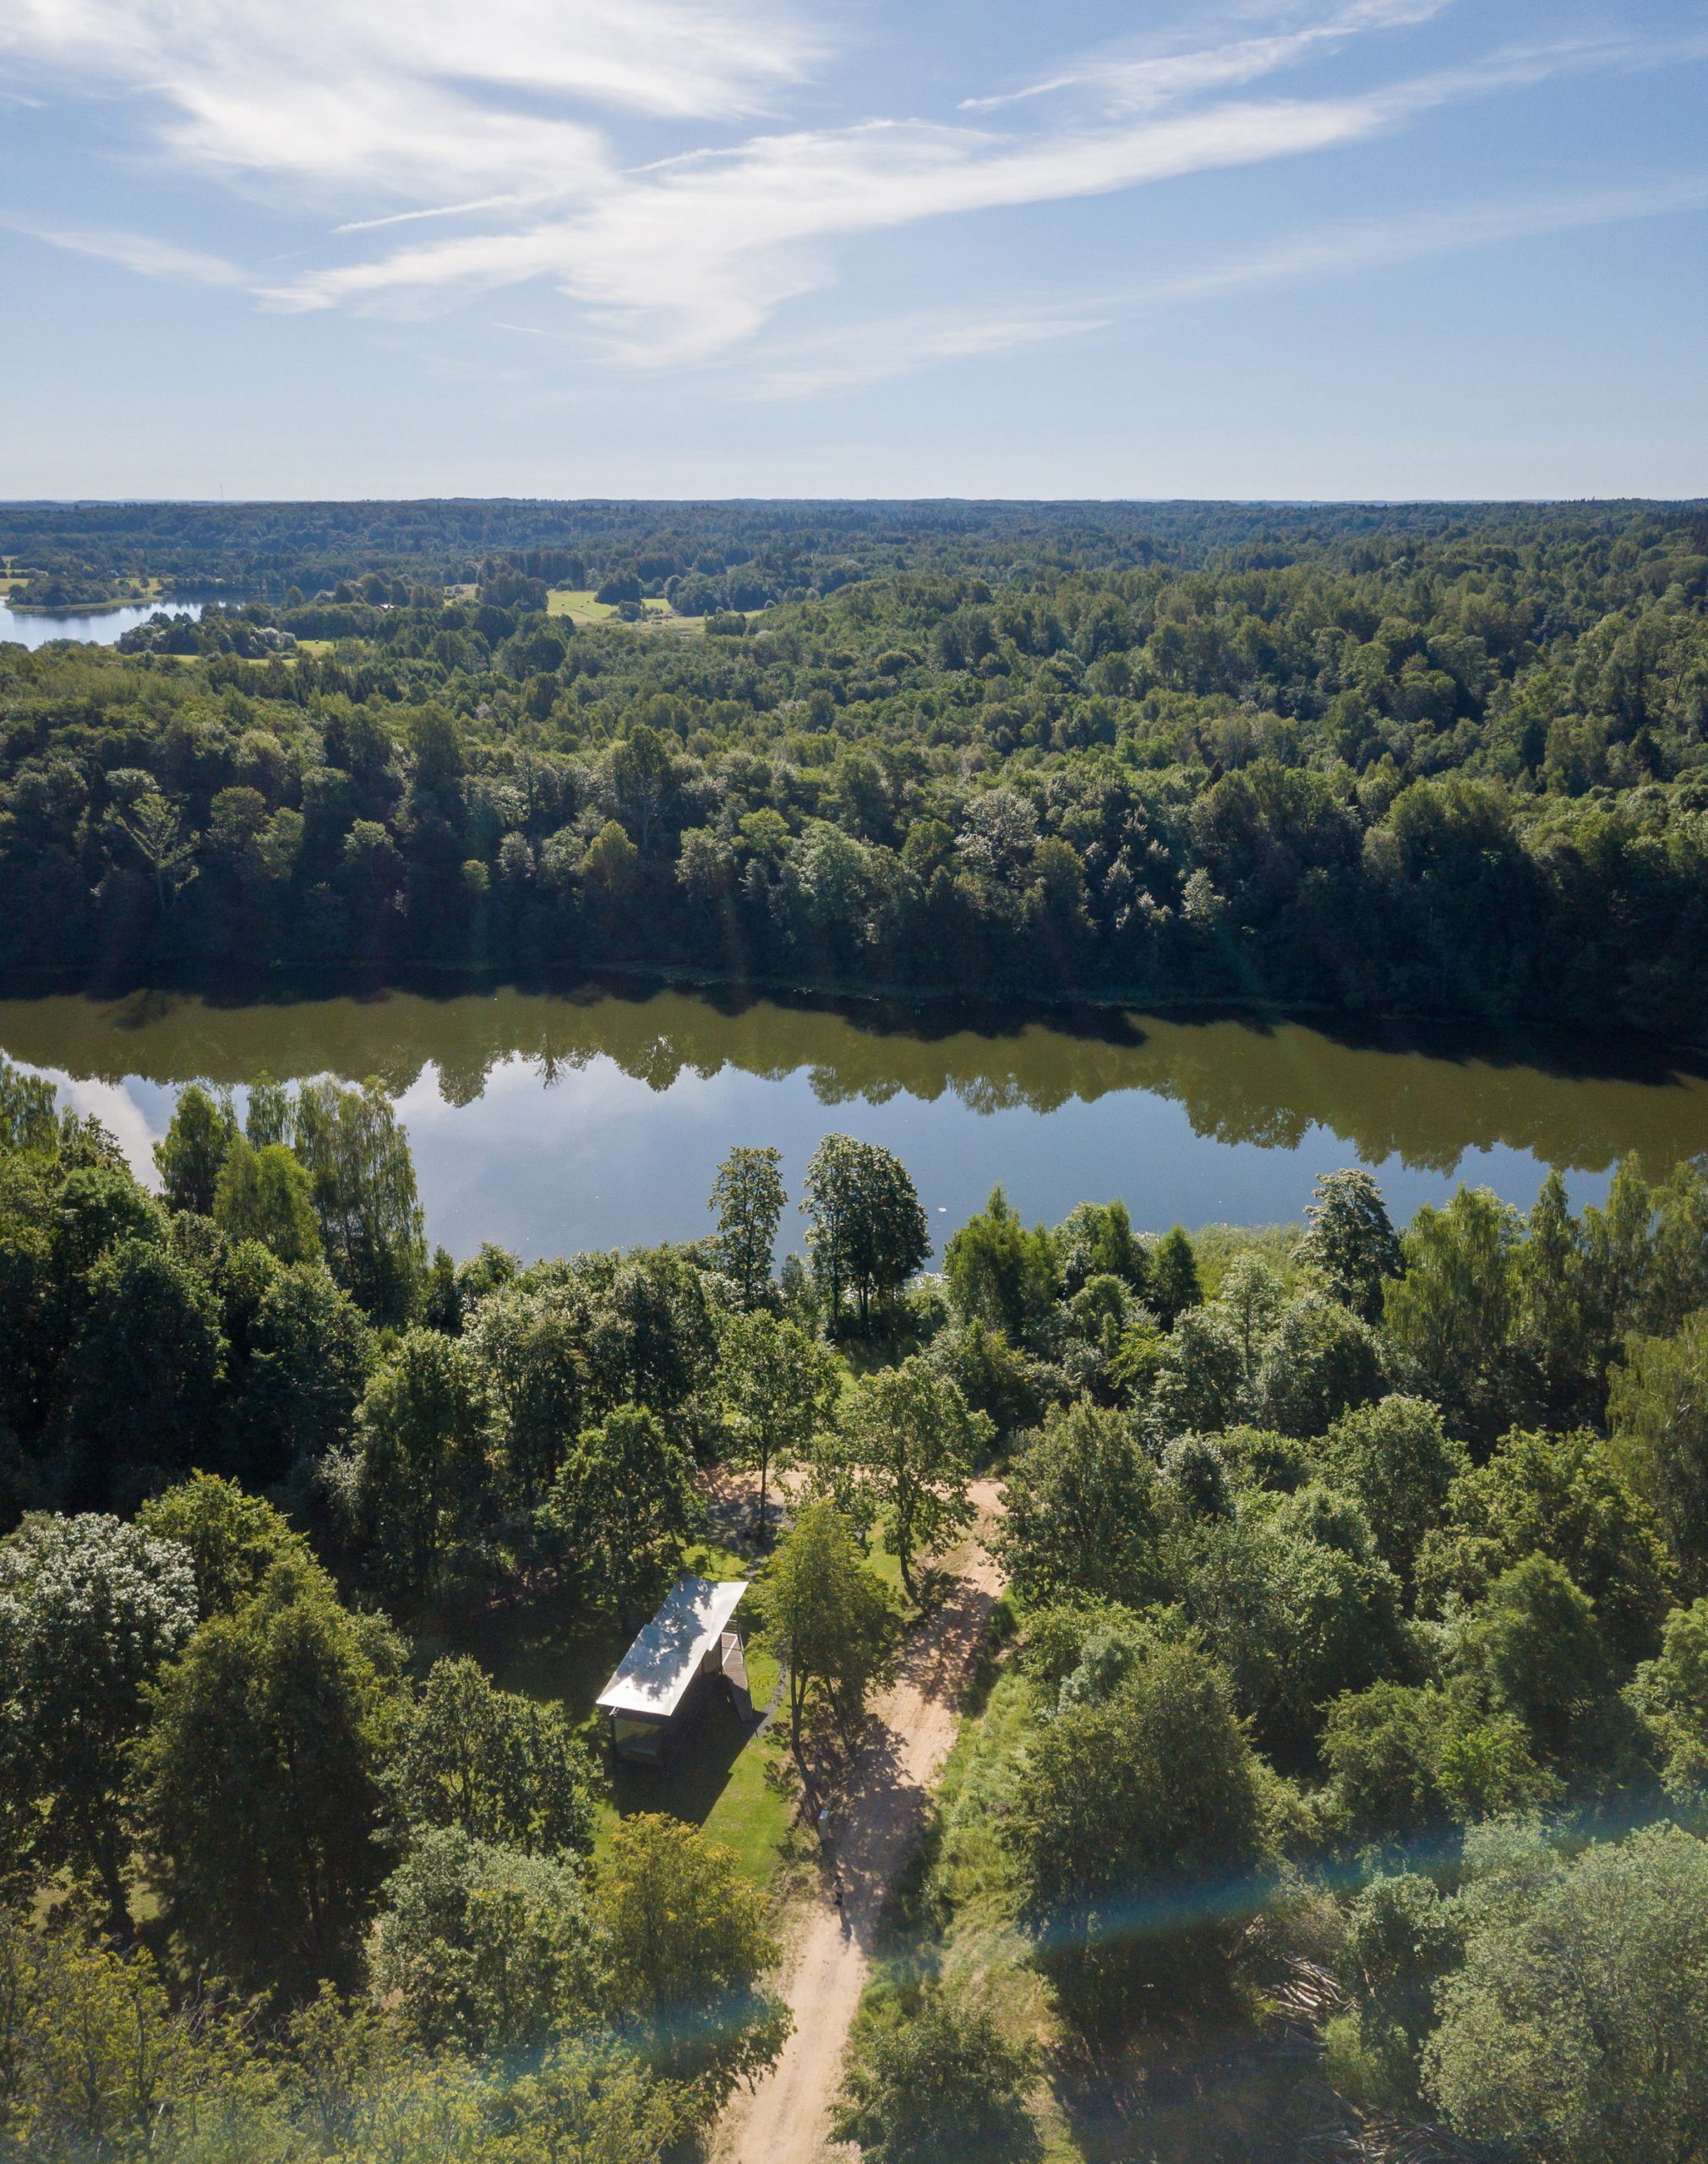 Aerial view of 019 Cabin by ŠA Atelier and Piritas